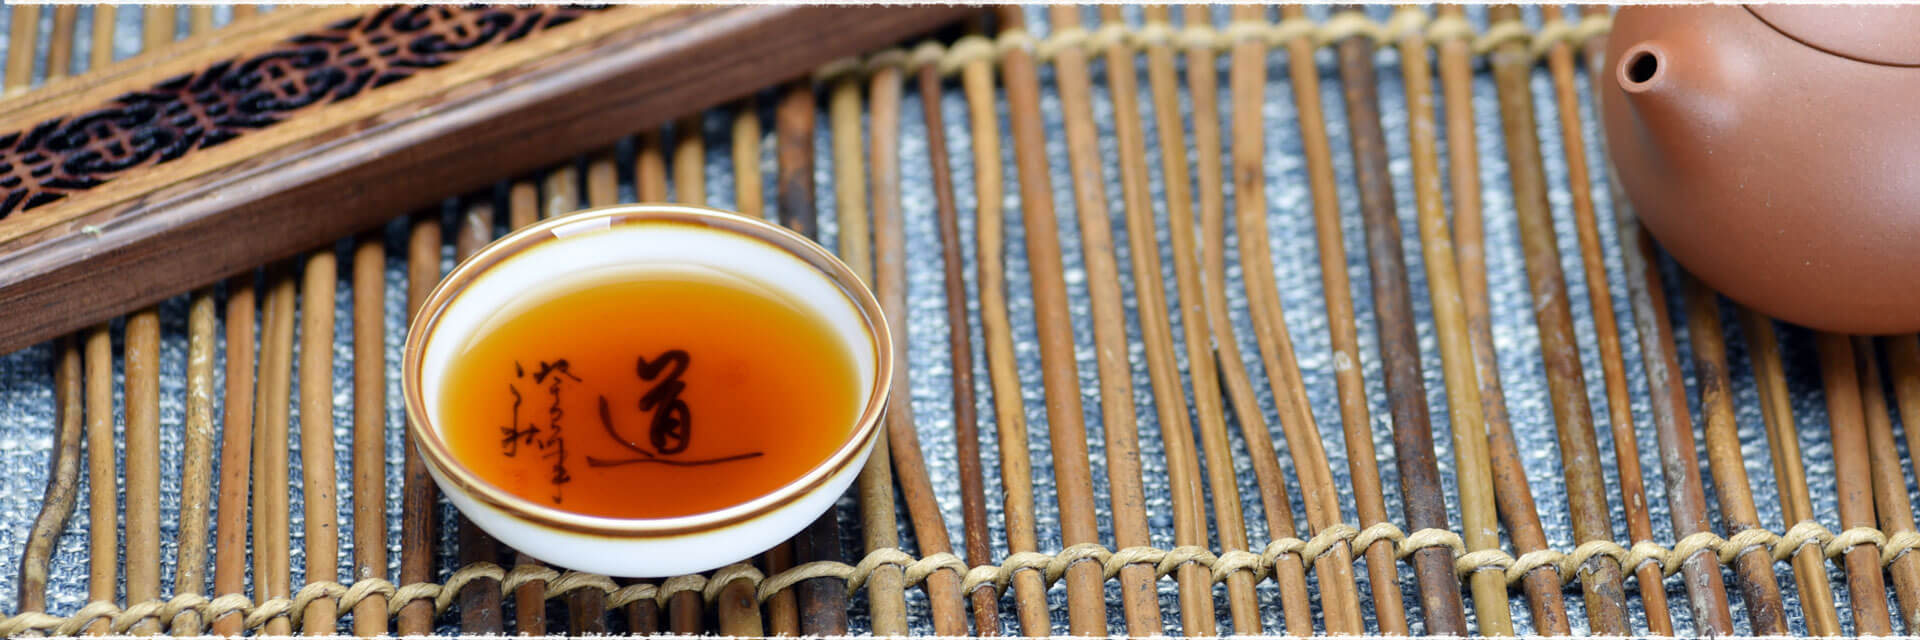 Other uses of Pu-erh tea